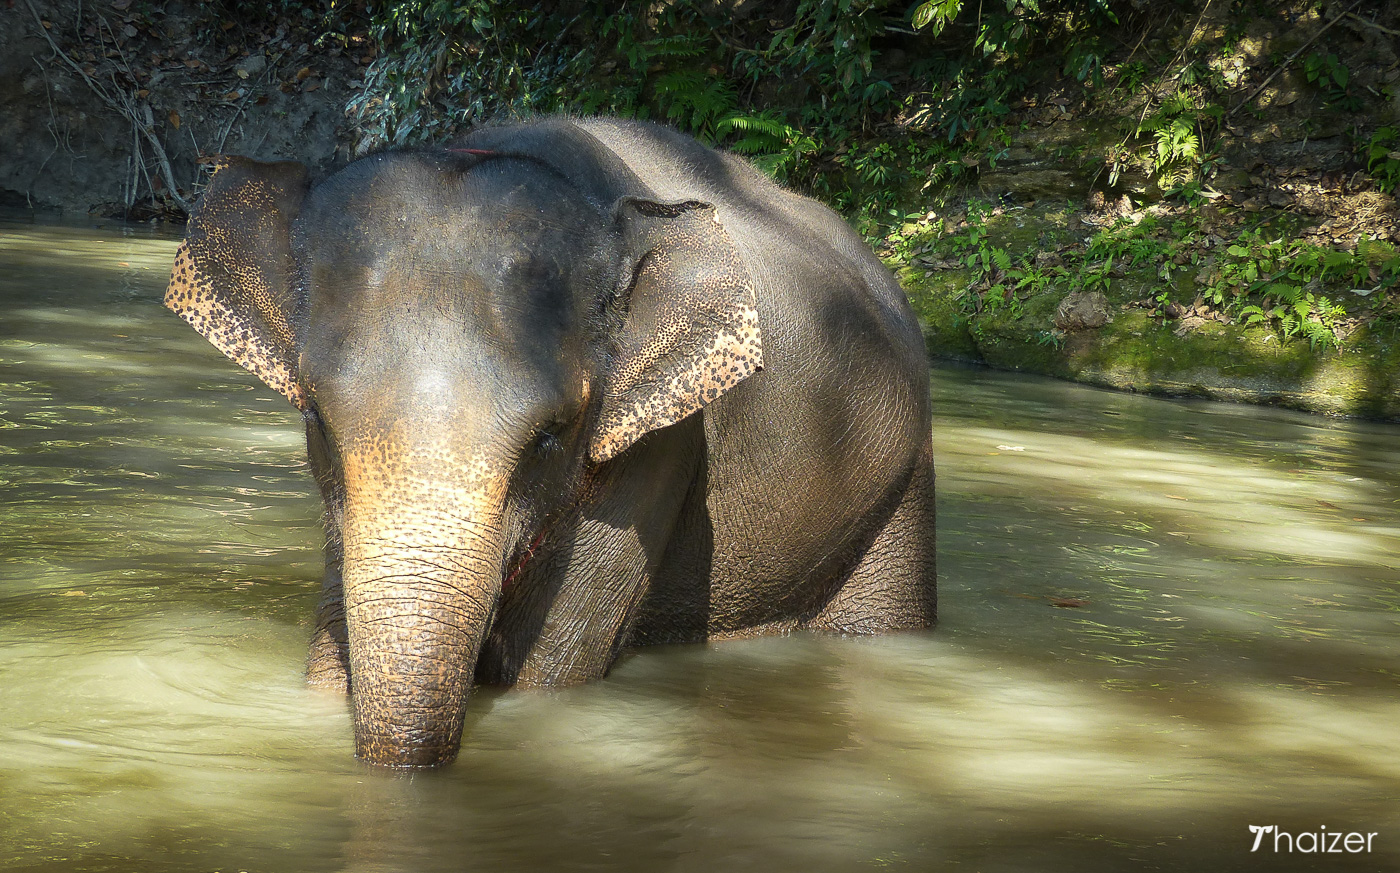 elephant bathes in the river at Tong Bai Foundation, Chiang Mai, Thailand